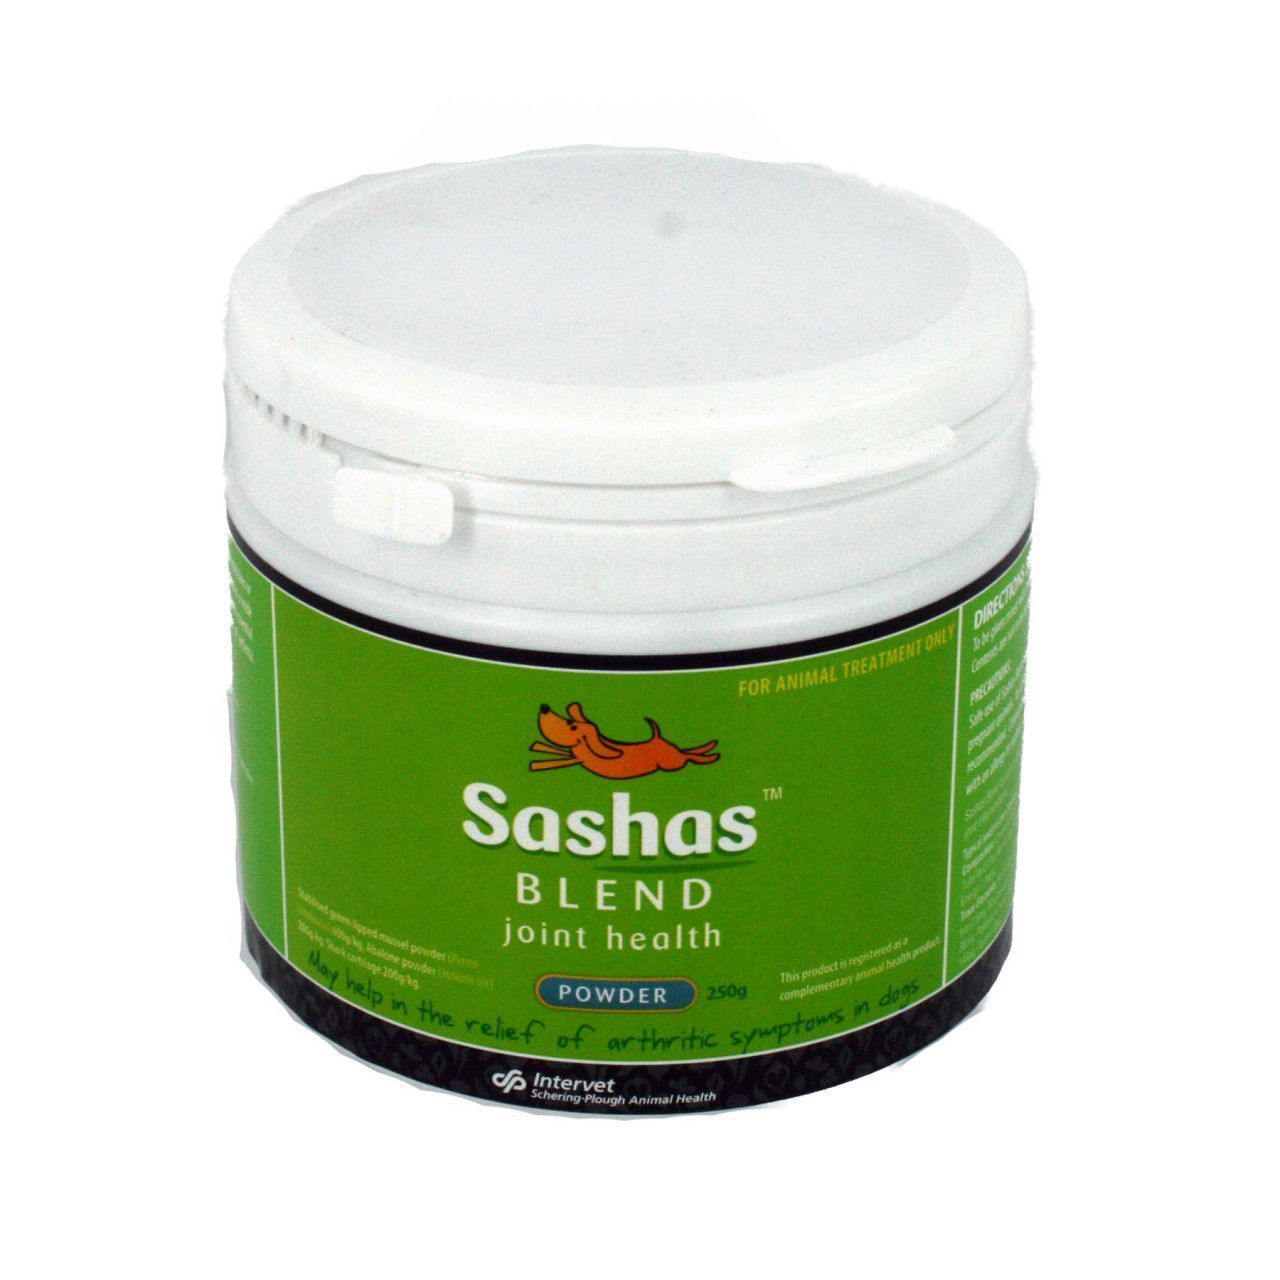 Sasha's Blend Joint Health Powder for Relief of Arthritis in Dogs - 250g